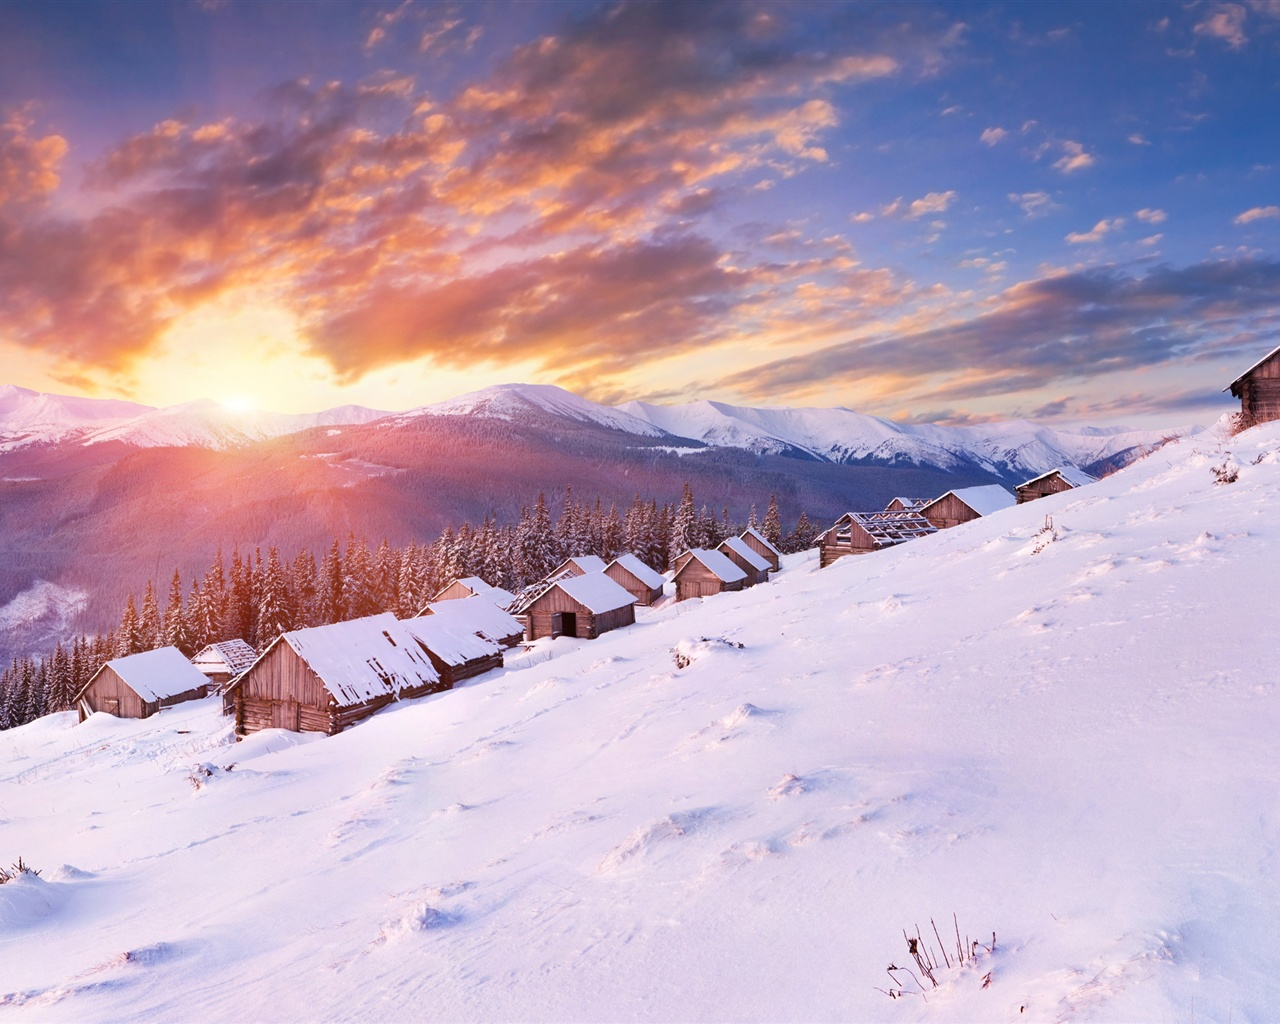 Under the sun, snow-capped mountains house wallpaper - 1280x1024